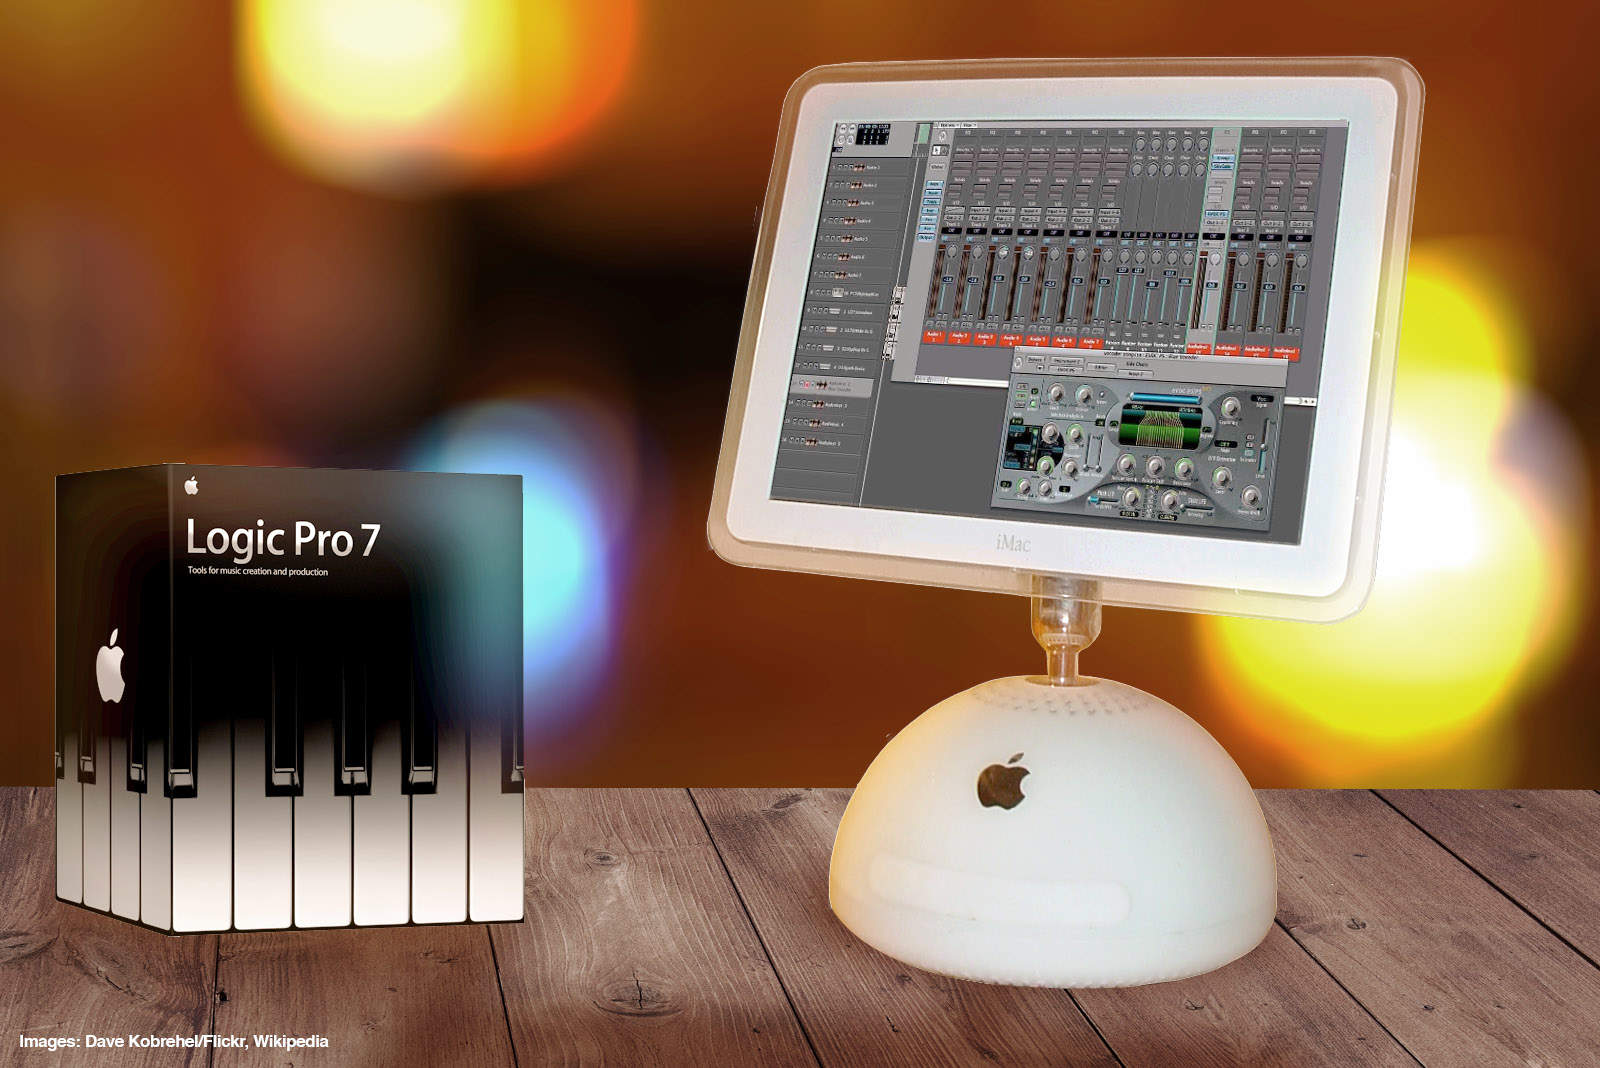 Logic Pro 7 was a great music creation tool for Apple fans.